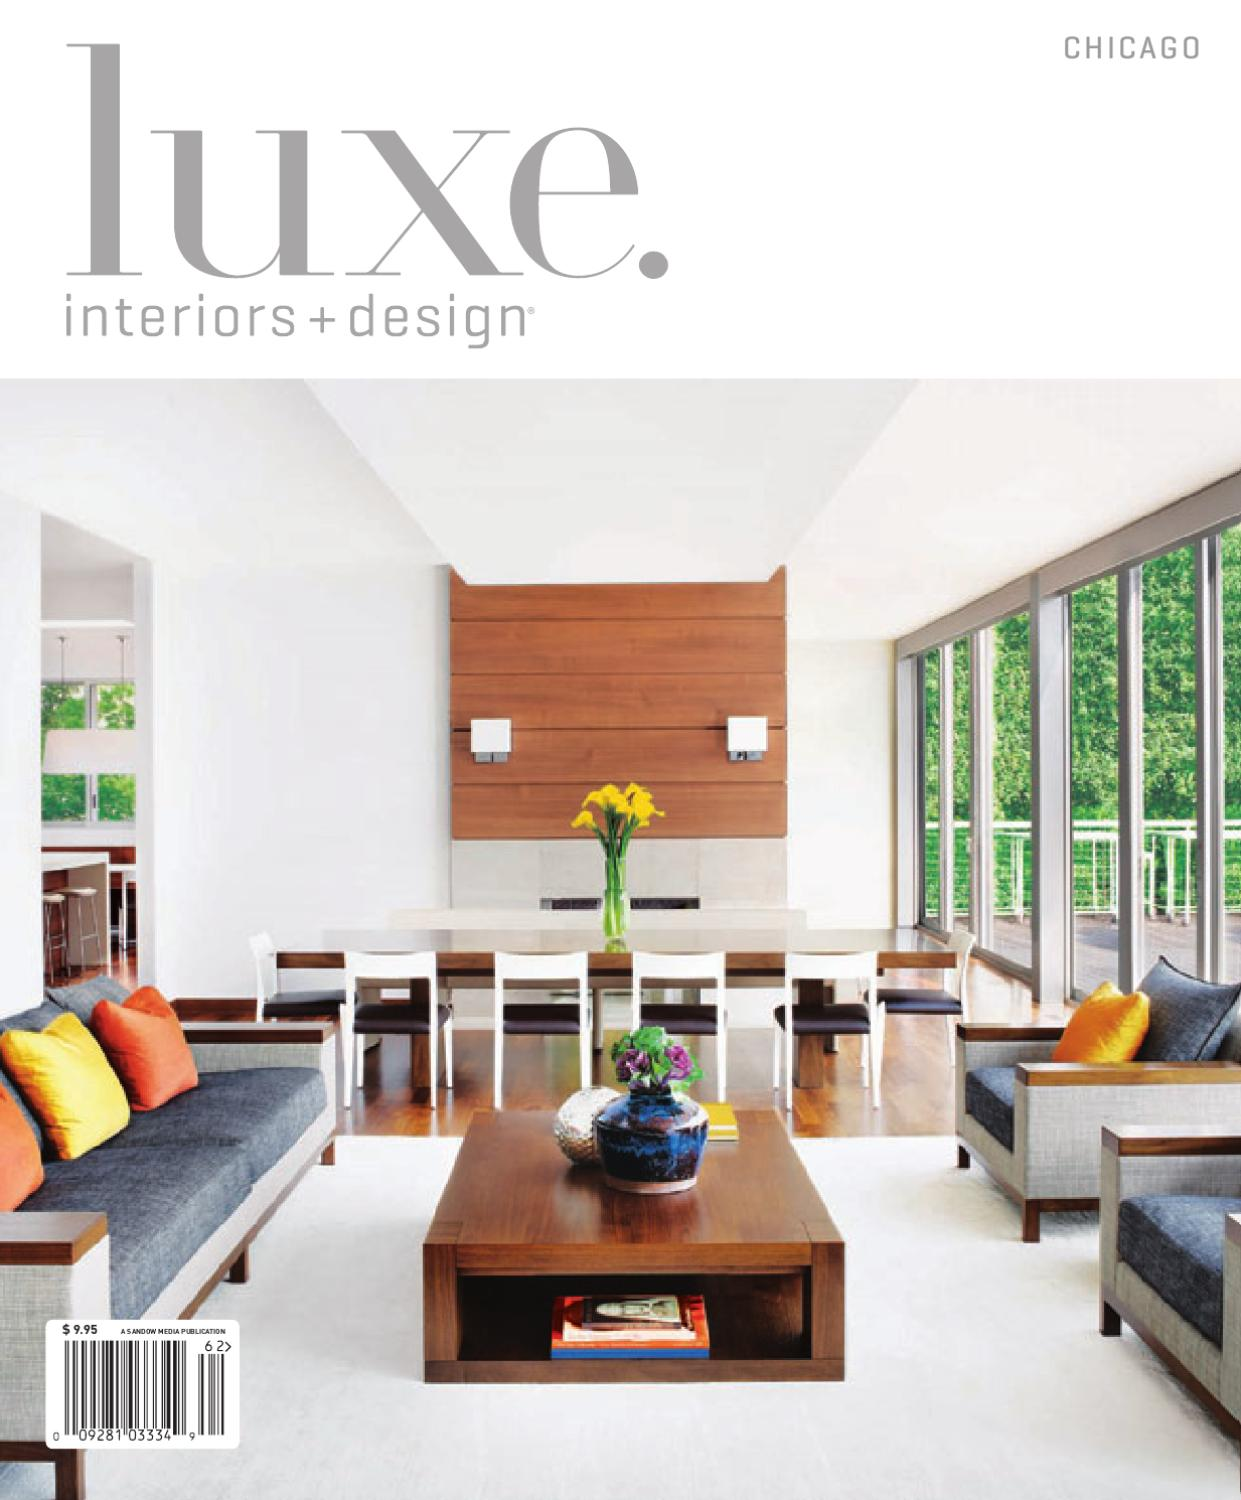 Luxe interior design chicago by sandow media issuu for Interior design chicago